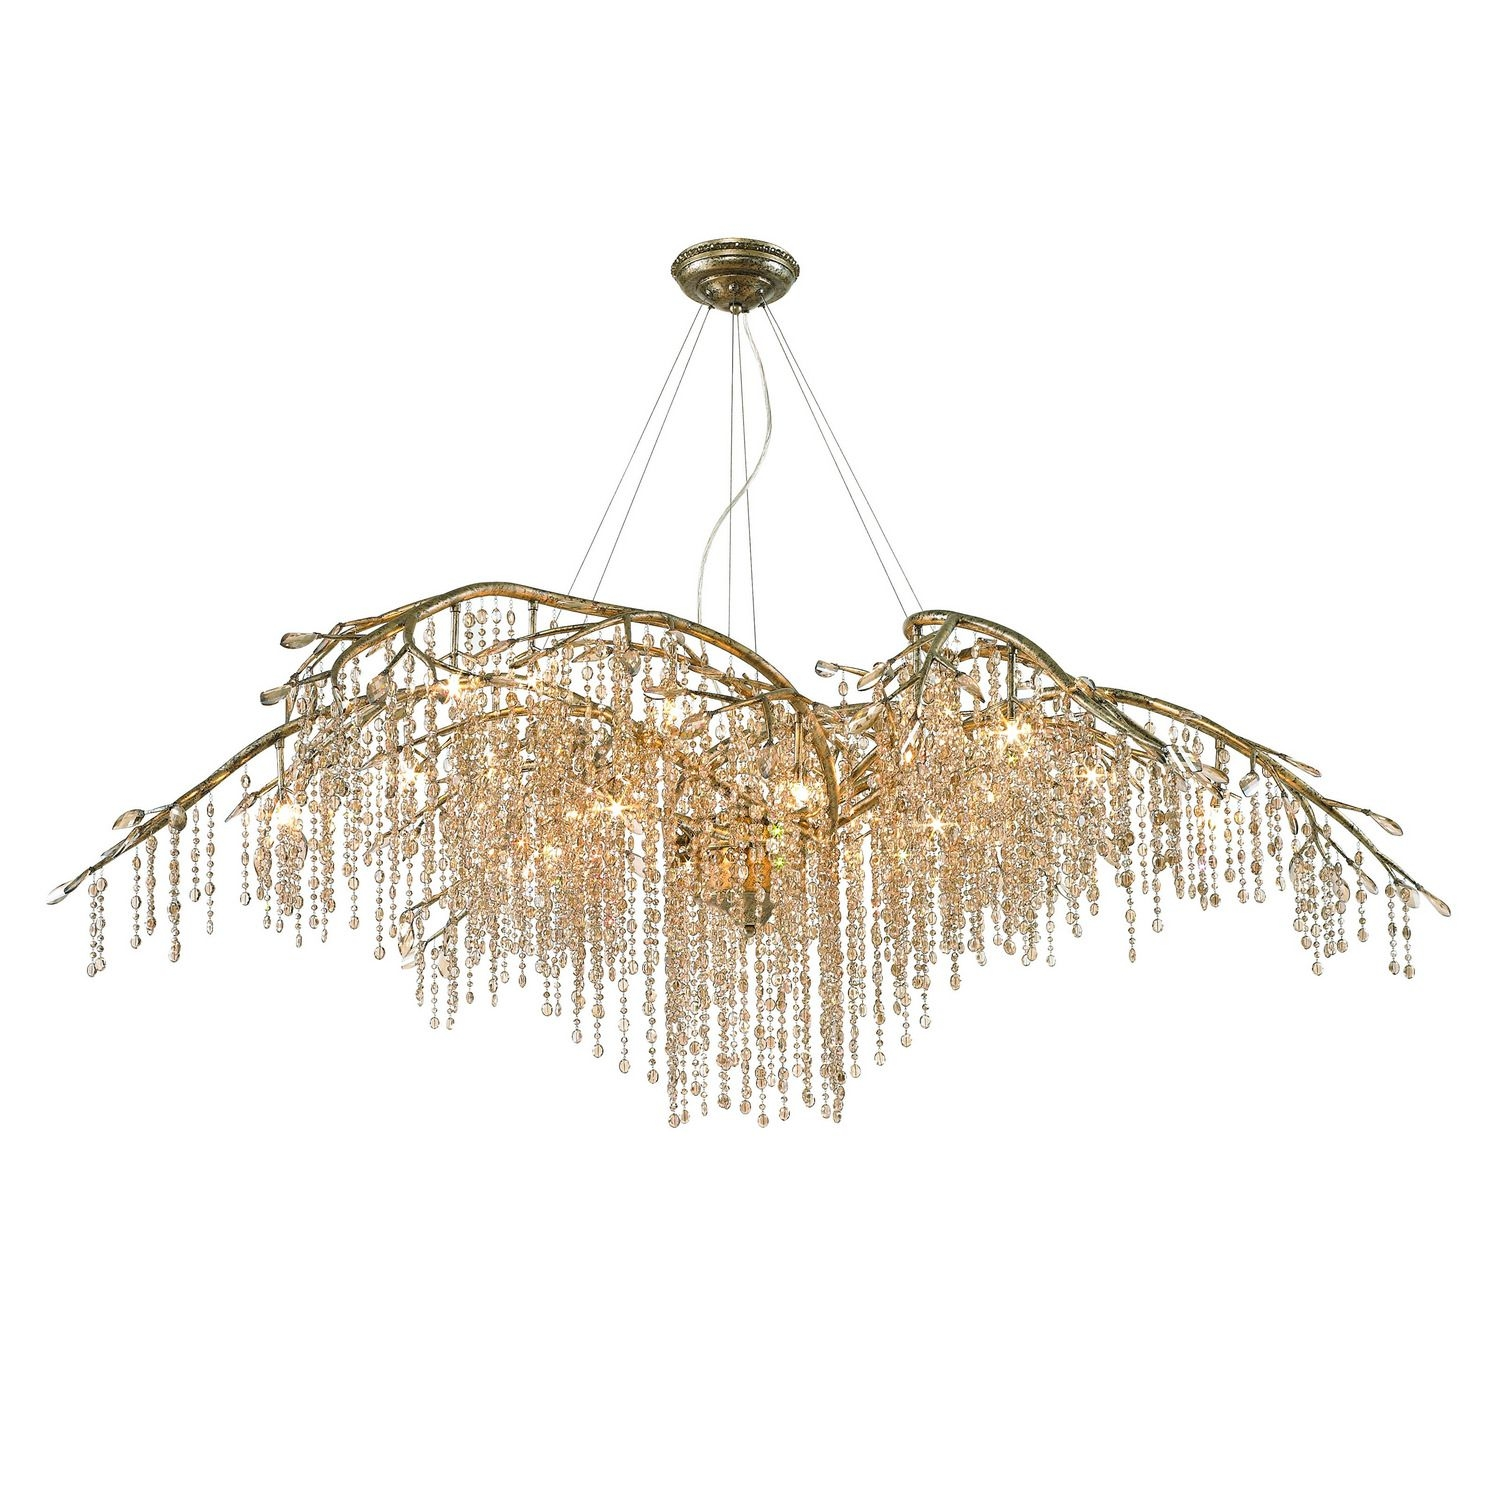 Qz990 Golden Lighting Autumn Twilight Goldsilver Clear Crystal Pertaining To Crystal Branch Chandelier (#11 of 12)